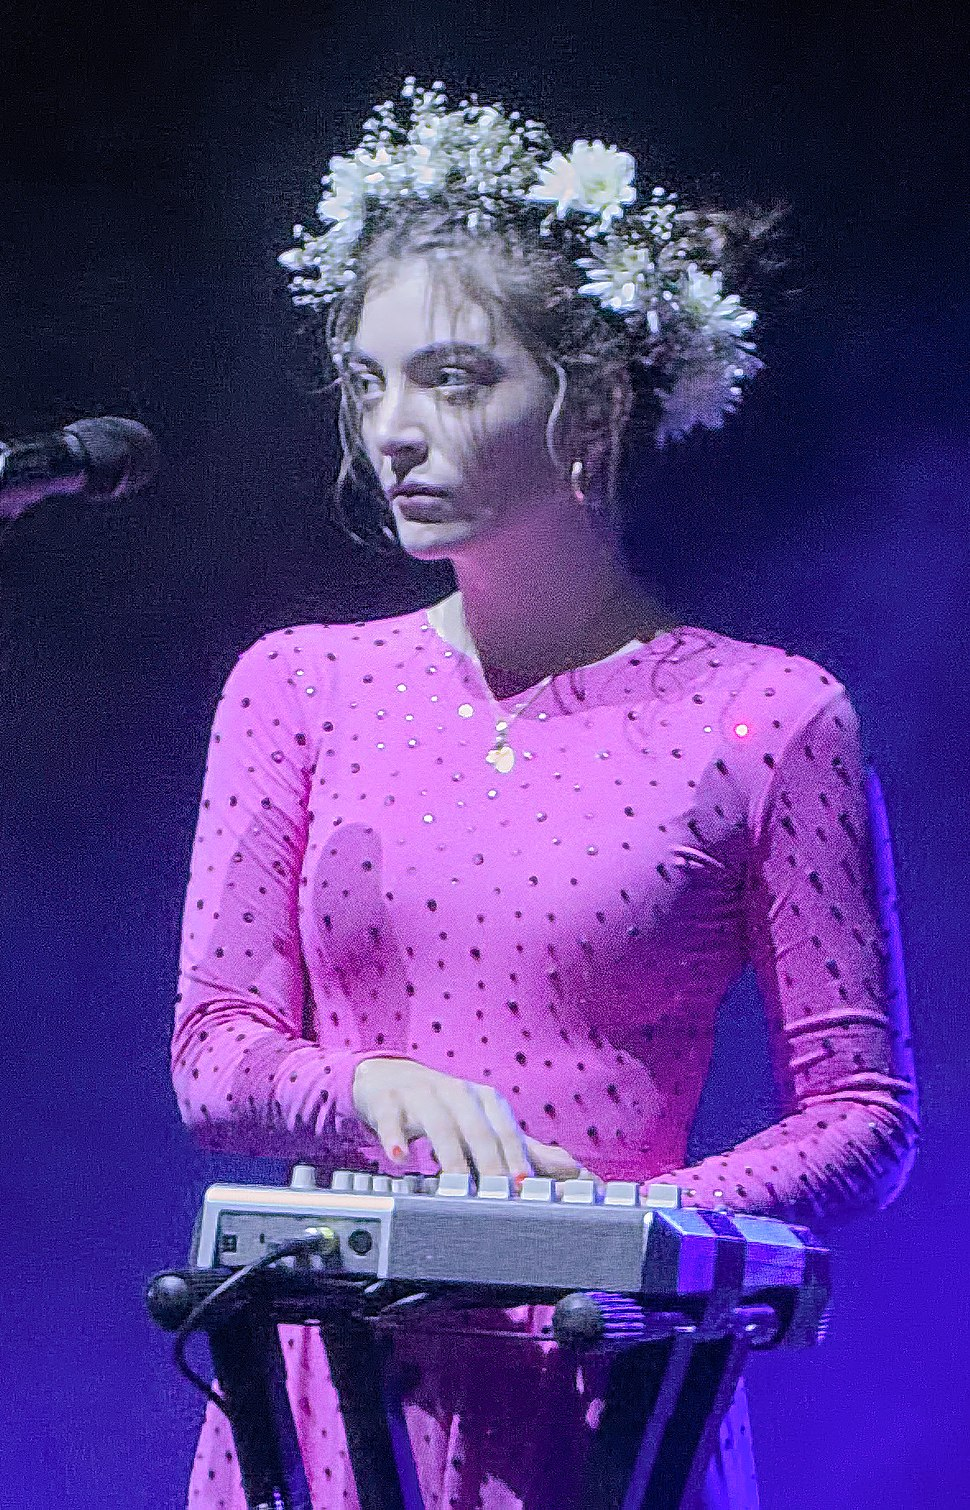 Lorde Brisbane Nov 2017 (cropped)